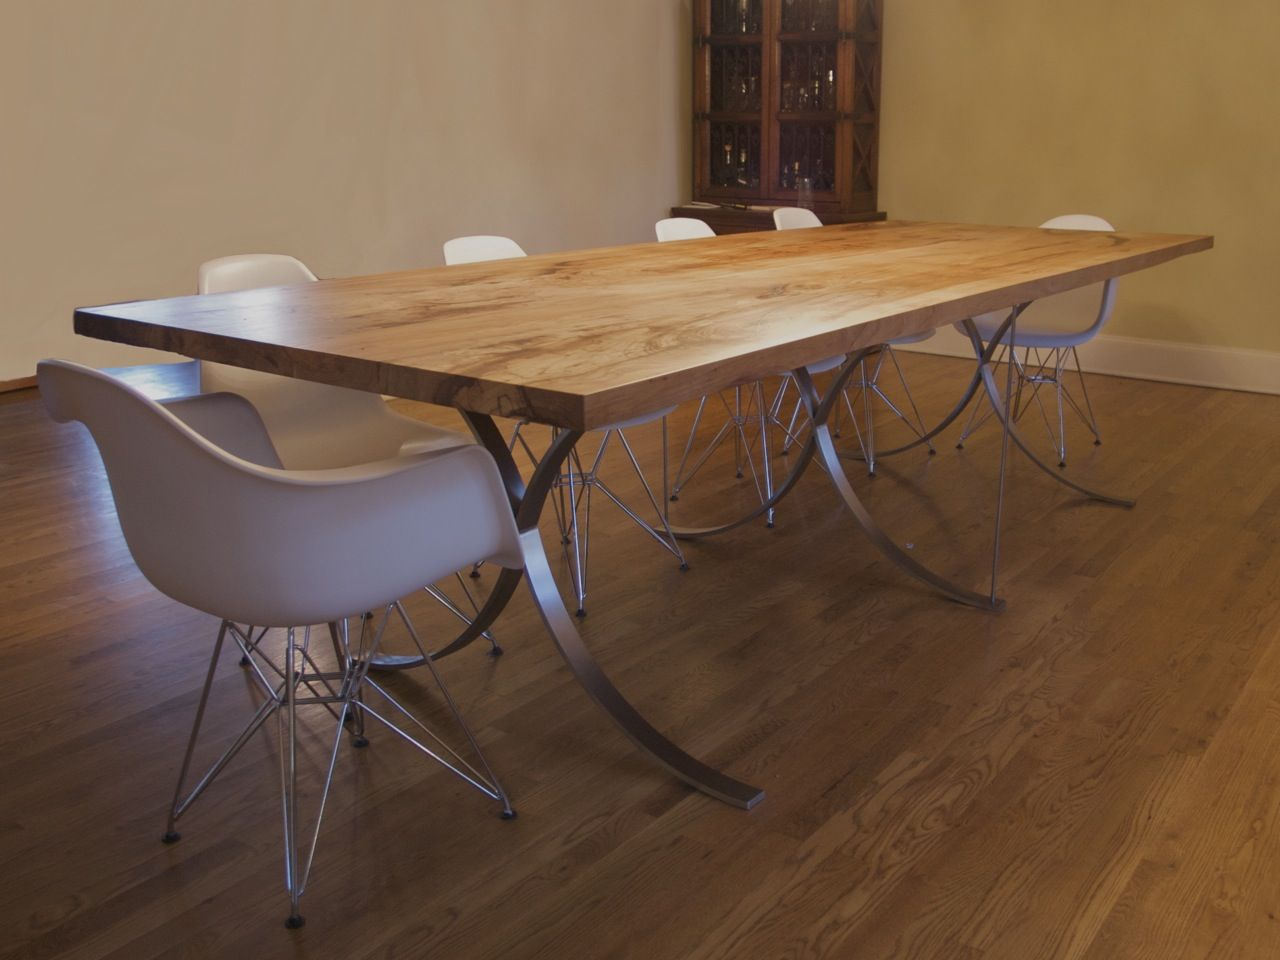 Stainless Steel Dining Room Tables Hand Finished Stainless Steel Table Frame With Solid Texas Native